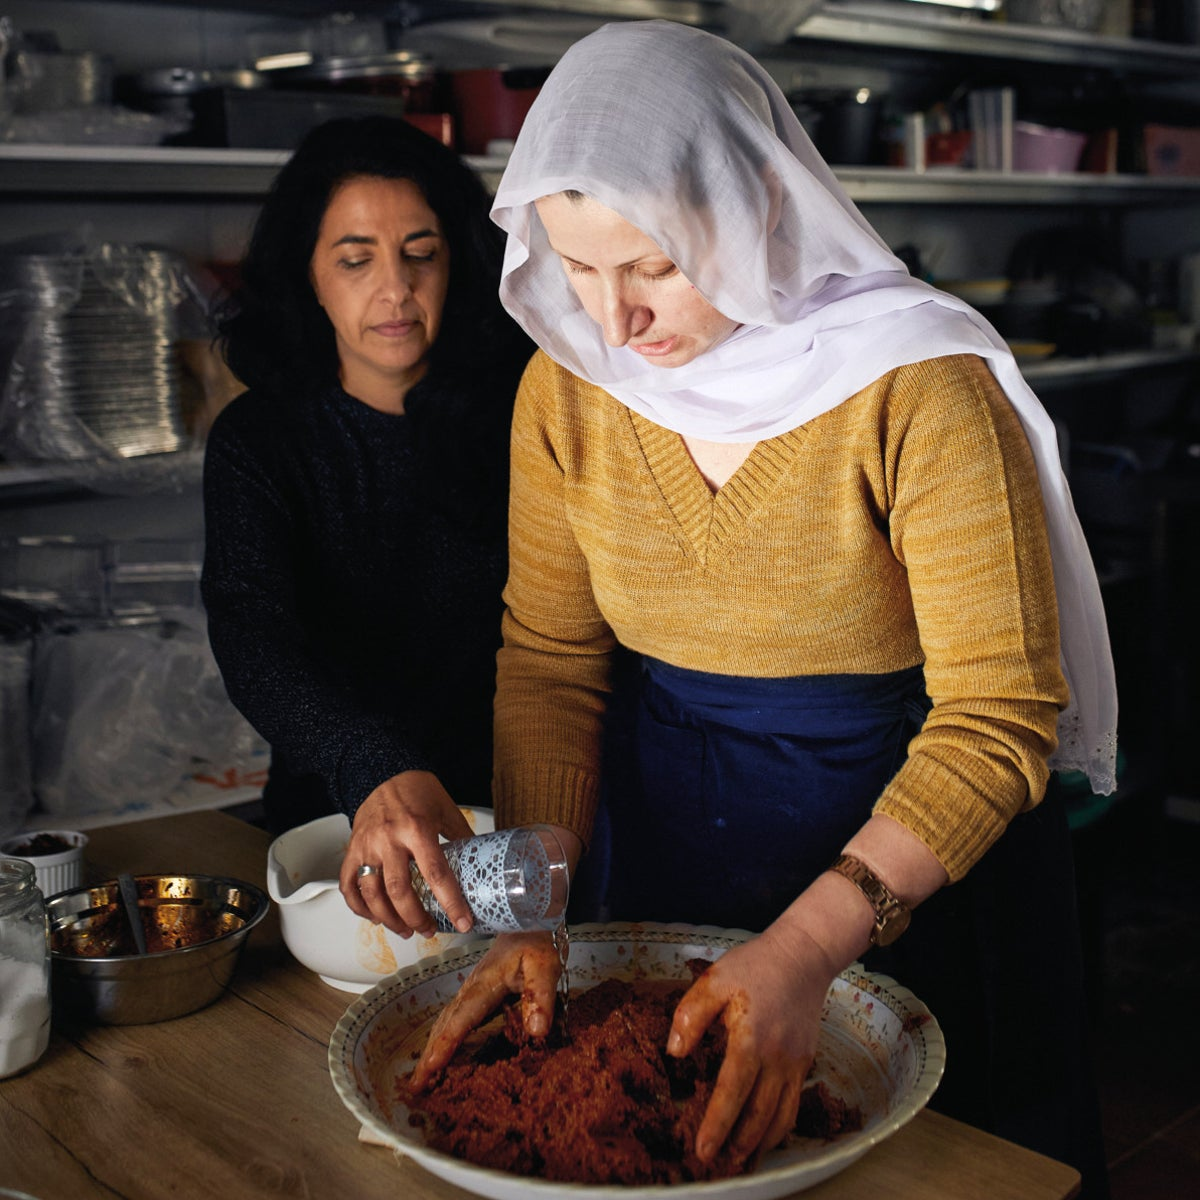 Sigi Mantel, left, and Saffa Ibrahim. For both of these women, the kitchen is a window through which to look at the world with curiosity and affection.